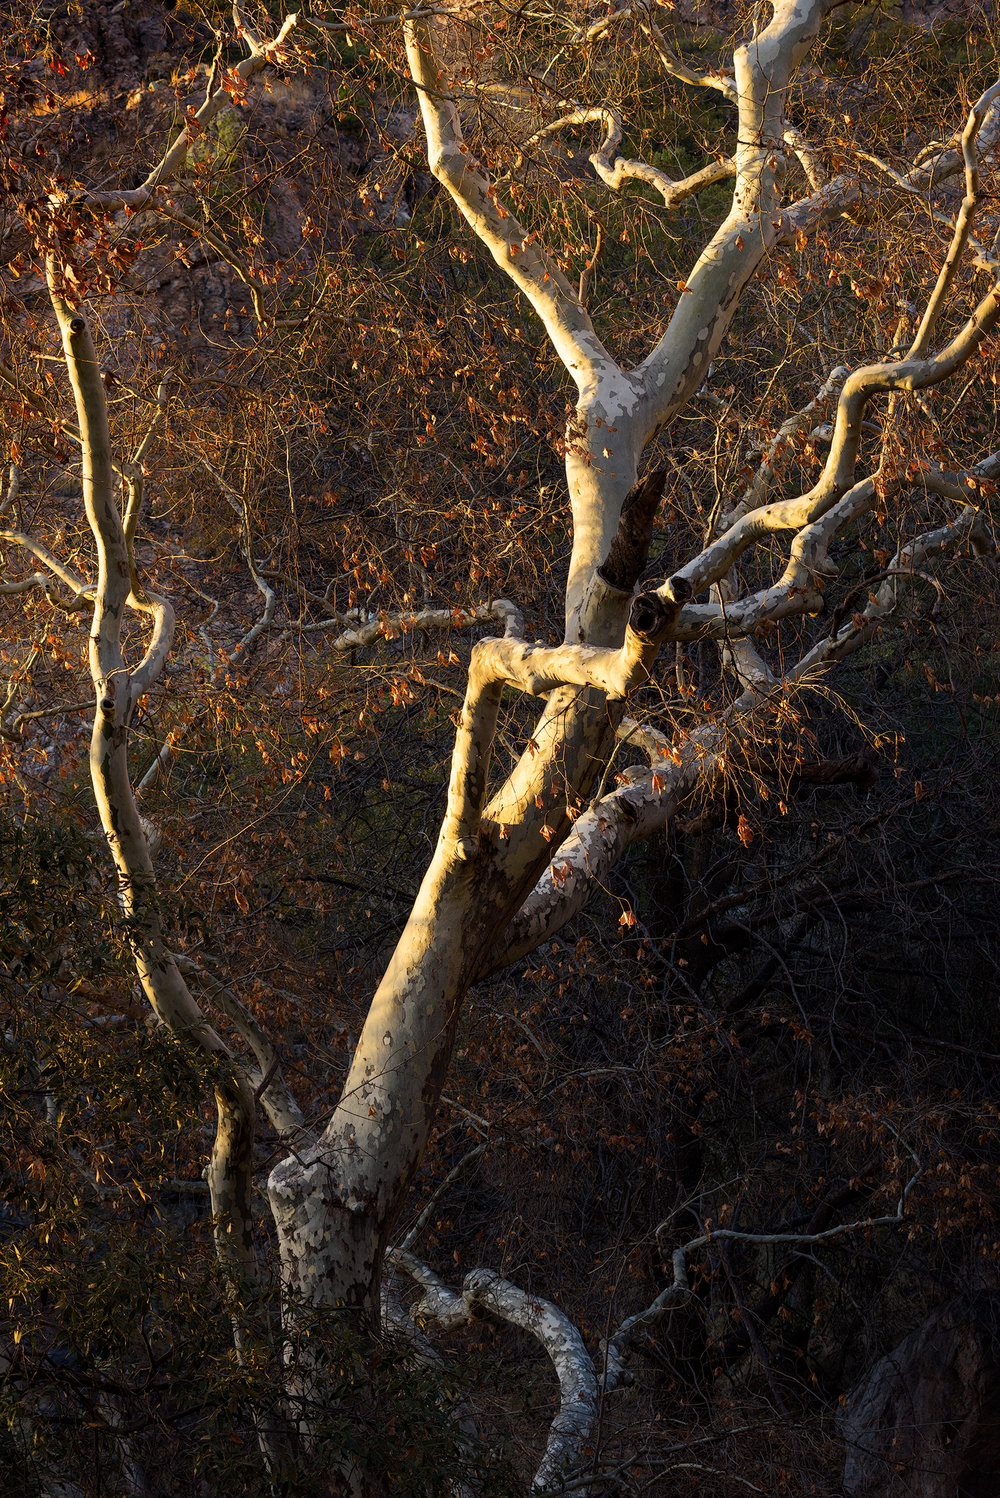 Arizona Sycamore basking in the glow of the setting sun.